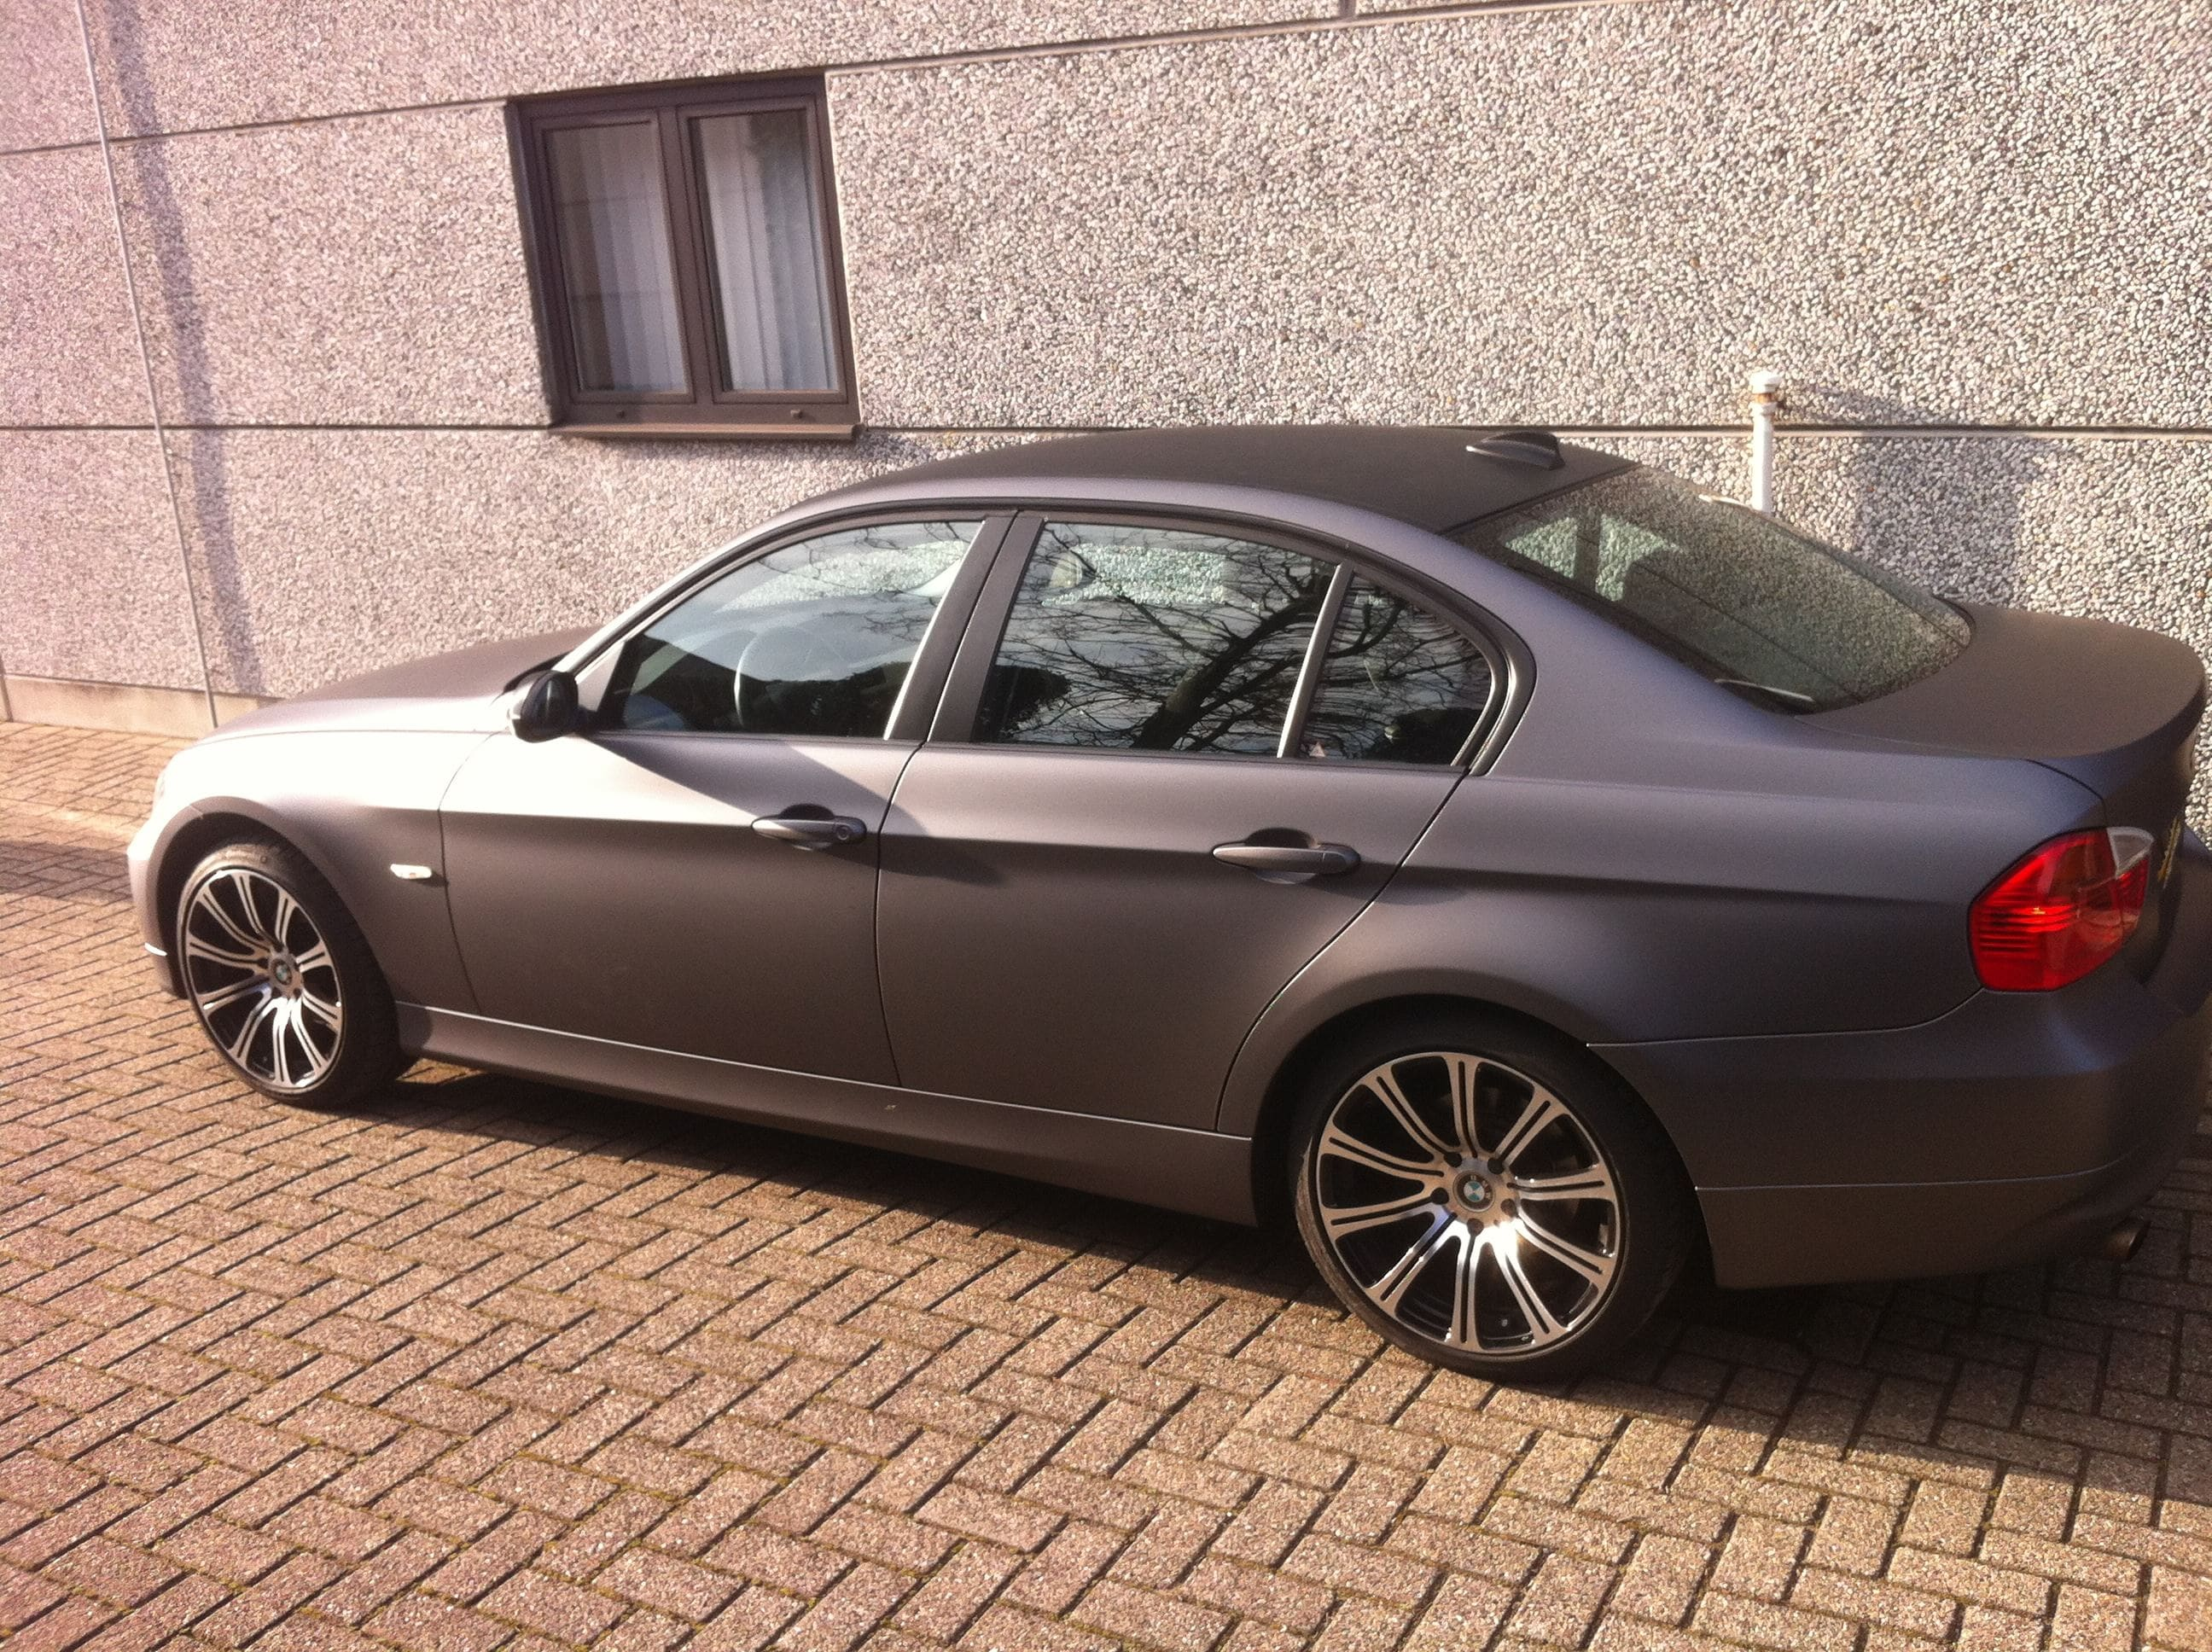 BMW E90 met Gunpowder Wrap, Carwrapping door Wrapmyride.nu Foto-nr:5370, ©2021